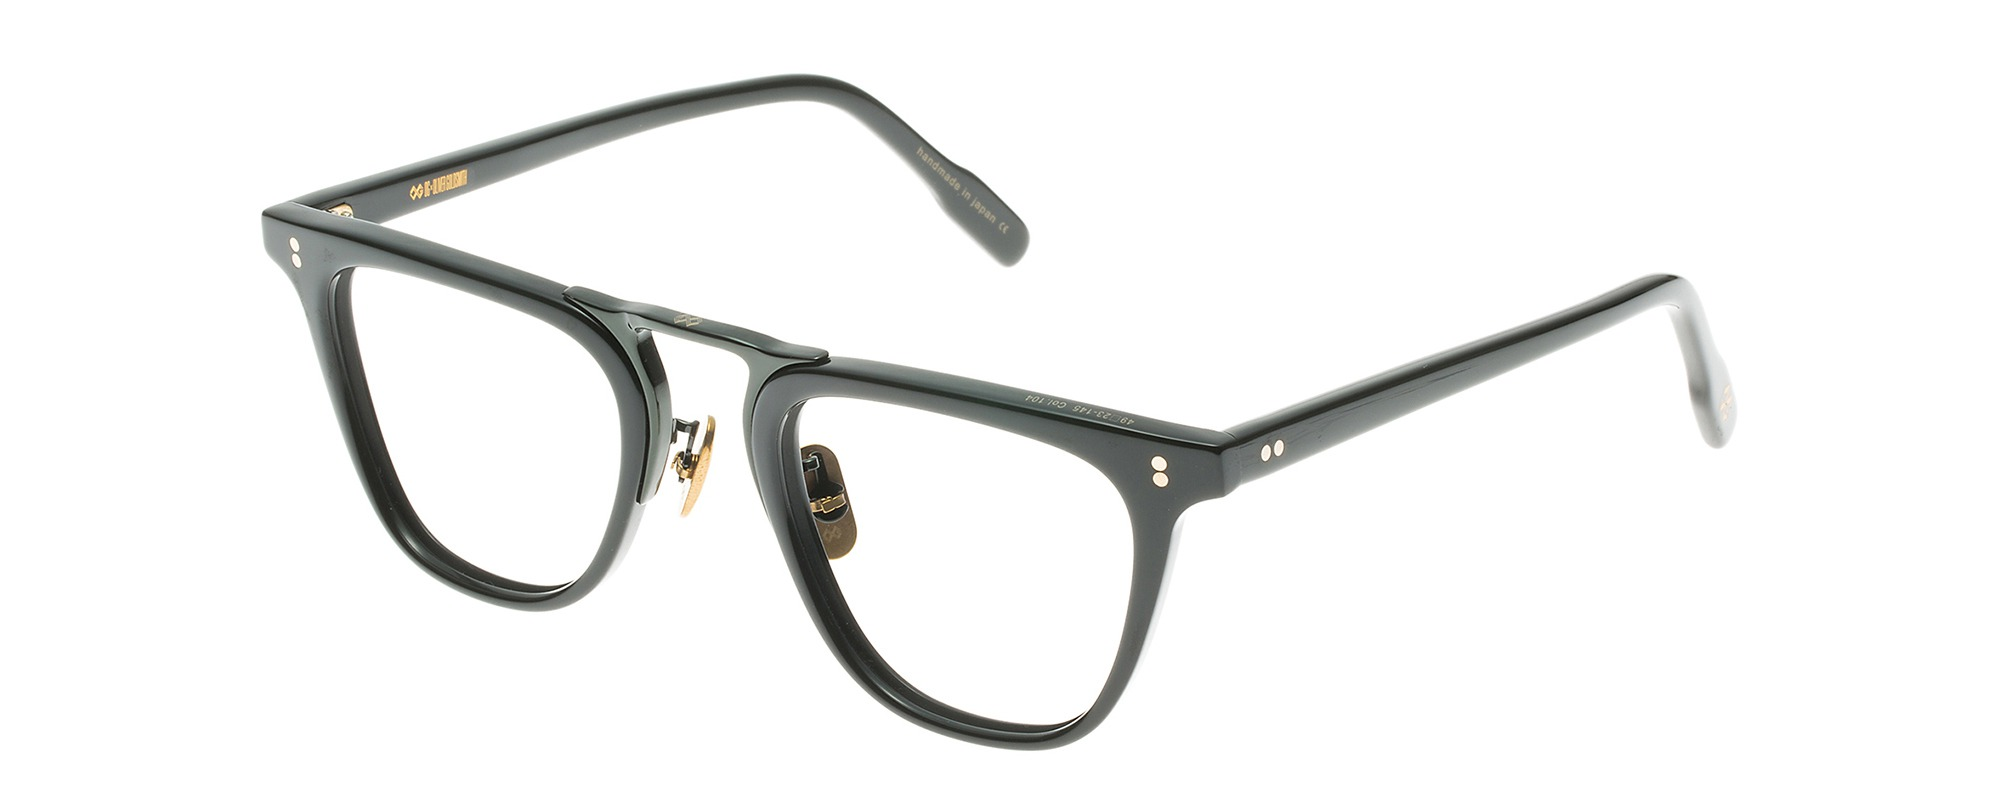 OG × OLIVER GOLDSMITH NOMAD49 ノマド